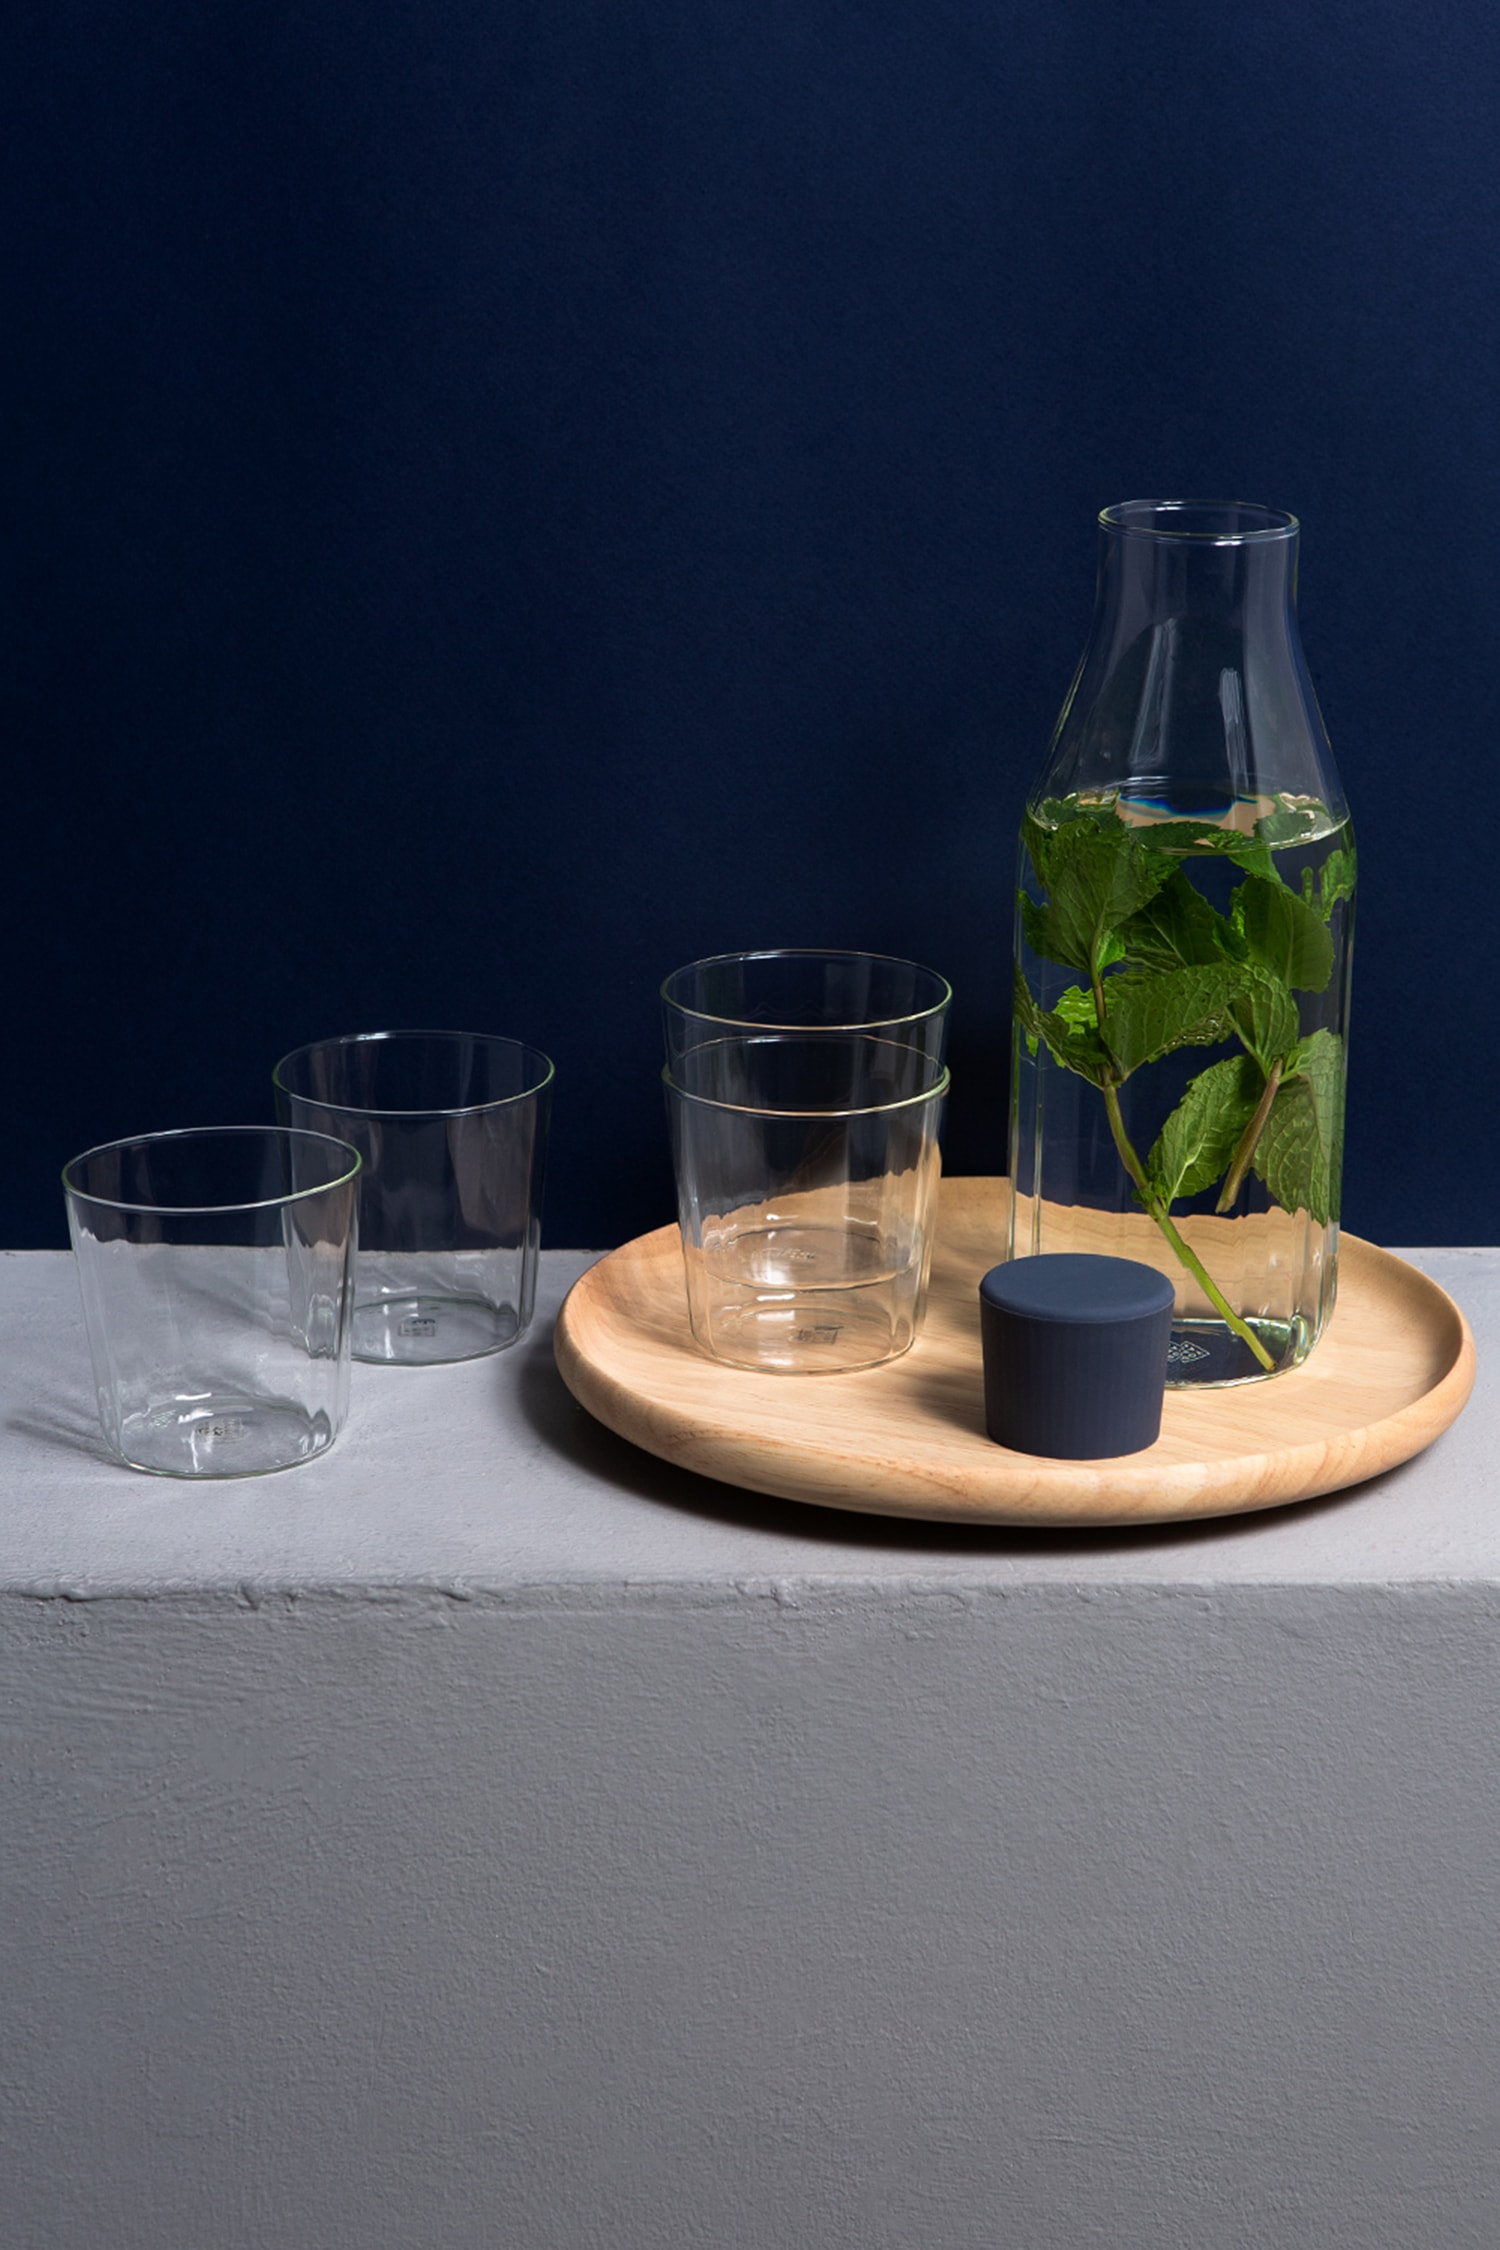 Front view of the Rivington Glassware collection, four tumblers, two of which are stacked and a carafe with its blue silicone stopper off and beside it. Inside the carafe is water and mint leaves. The carafe and stacked tumblers are on a wooden plate. White surface and dark blue background.